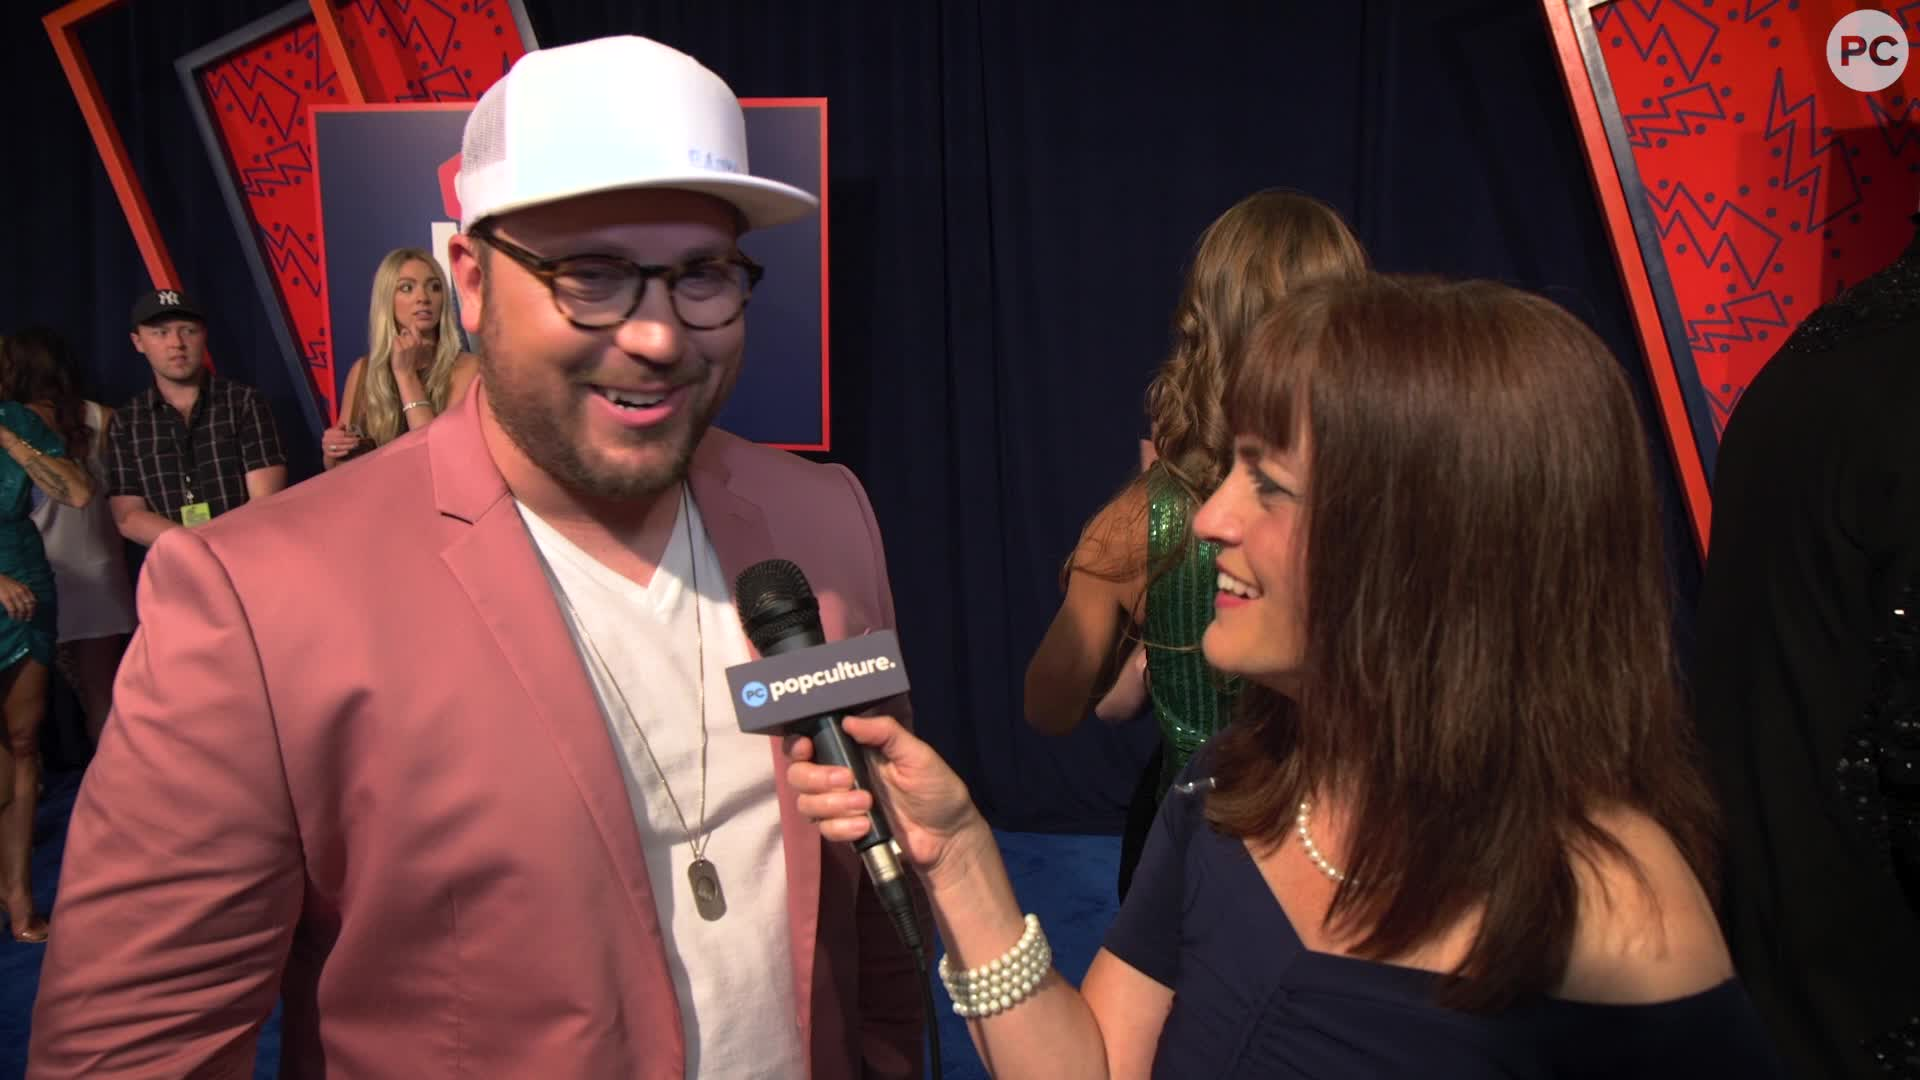 Mitchell Tenpenny - 2019 CMT Awards Red Carpet Exclusive screen capture